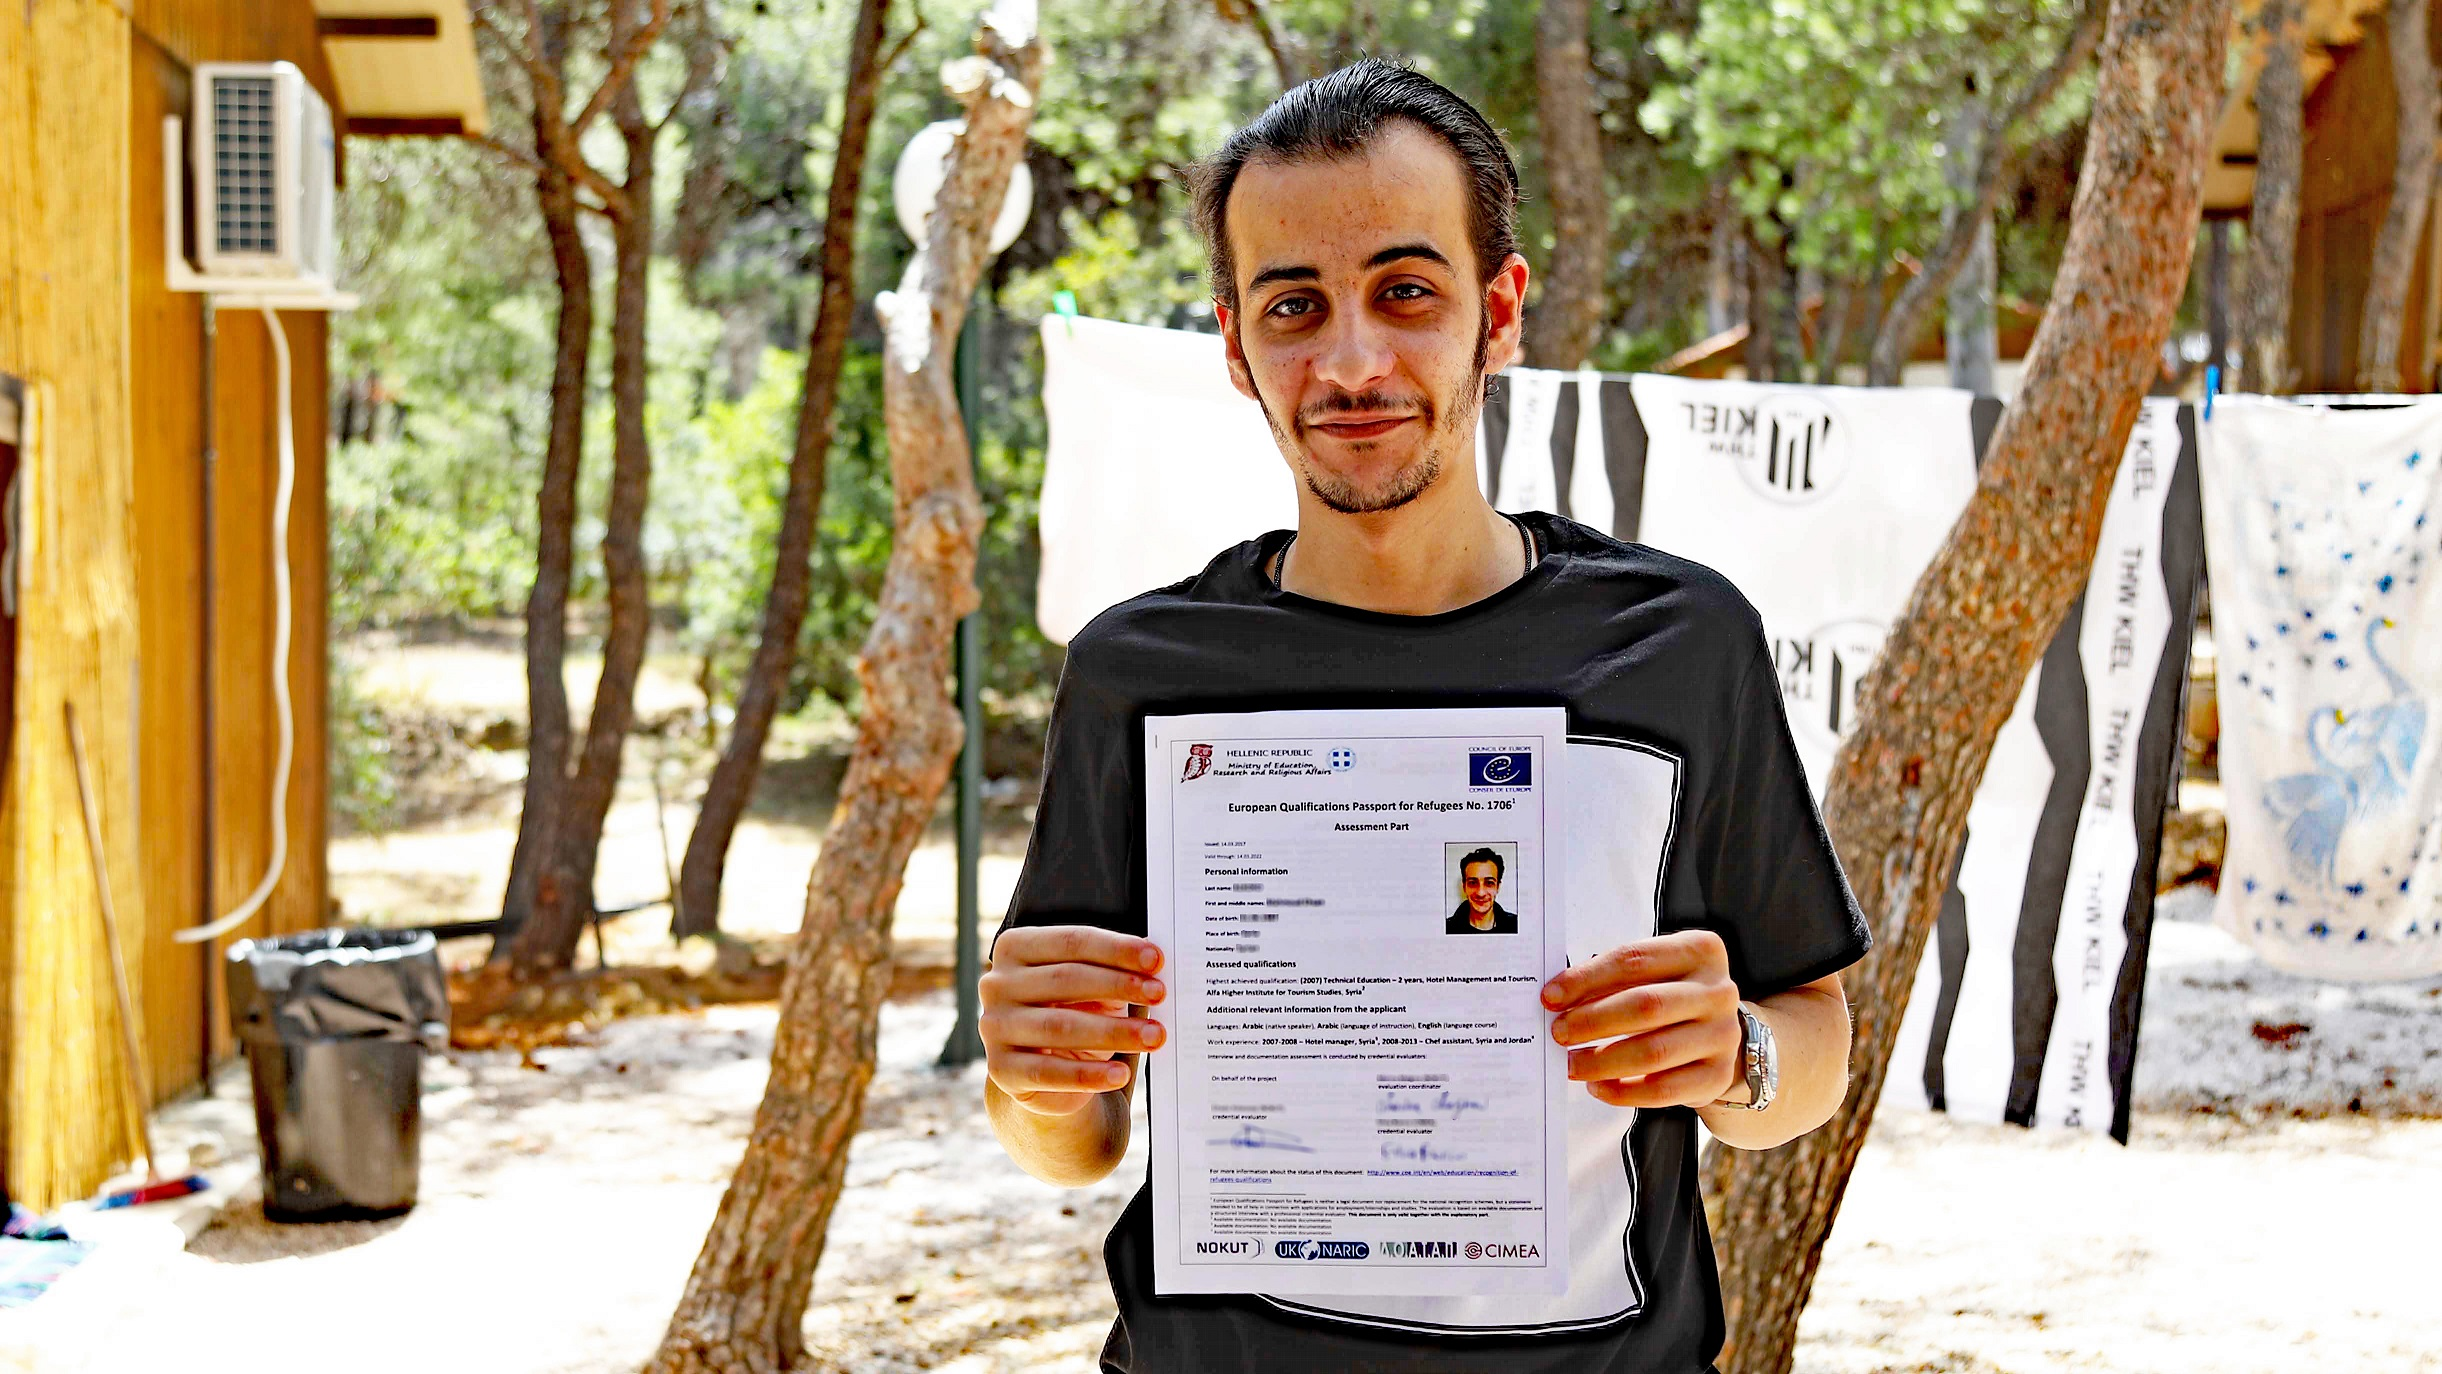 European Qualifications Passport for Refugees issued - Mahmoud